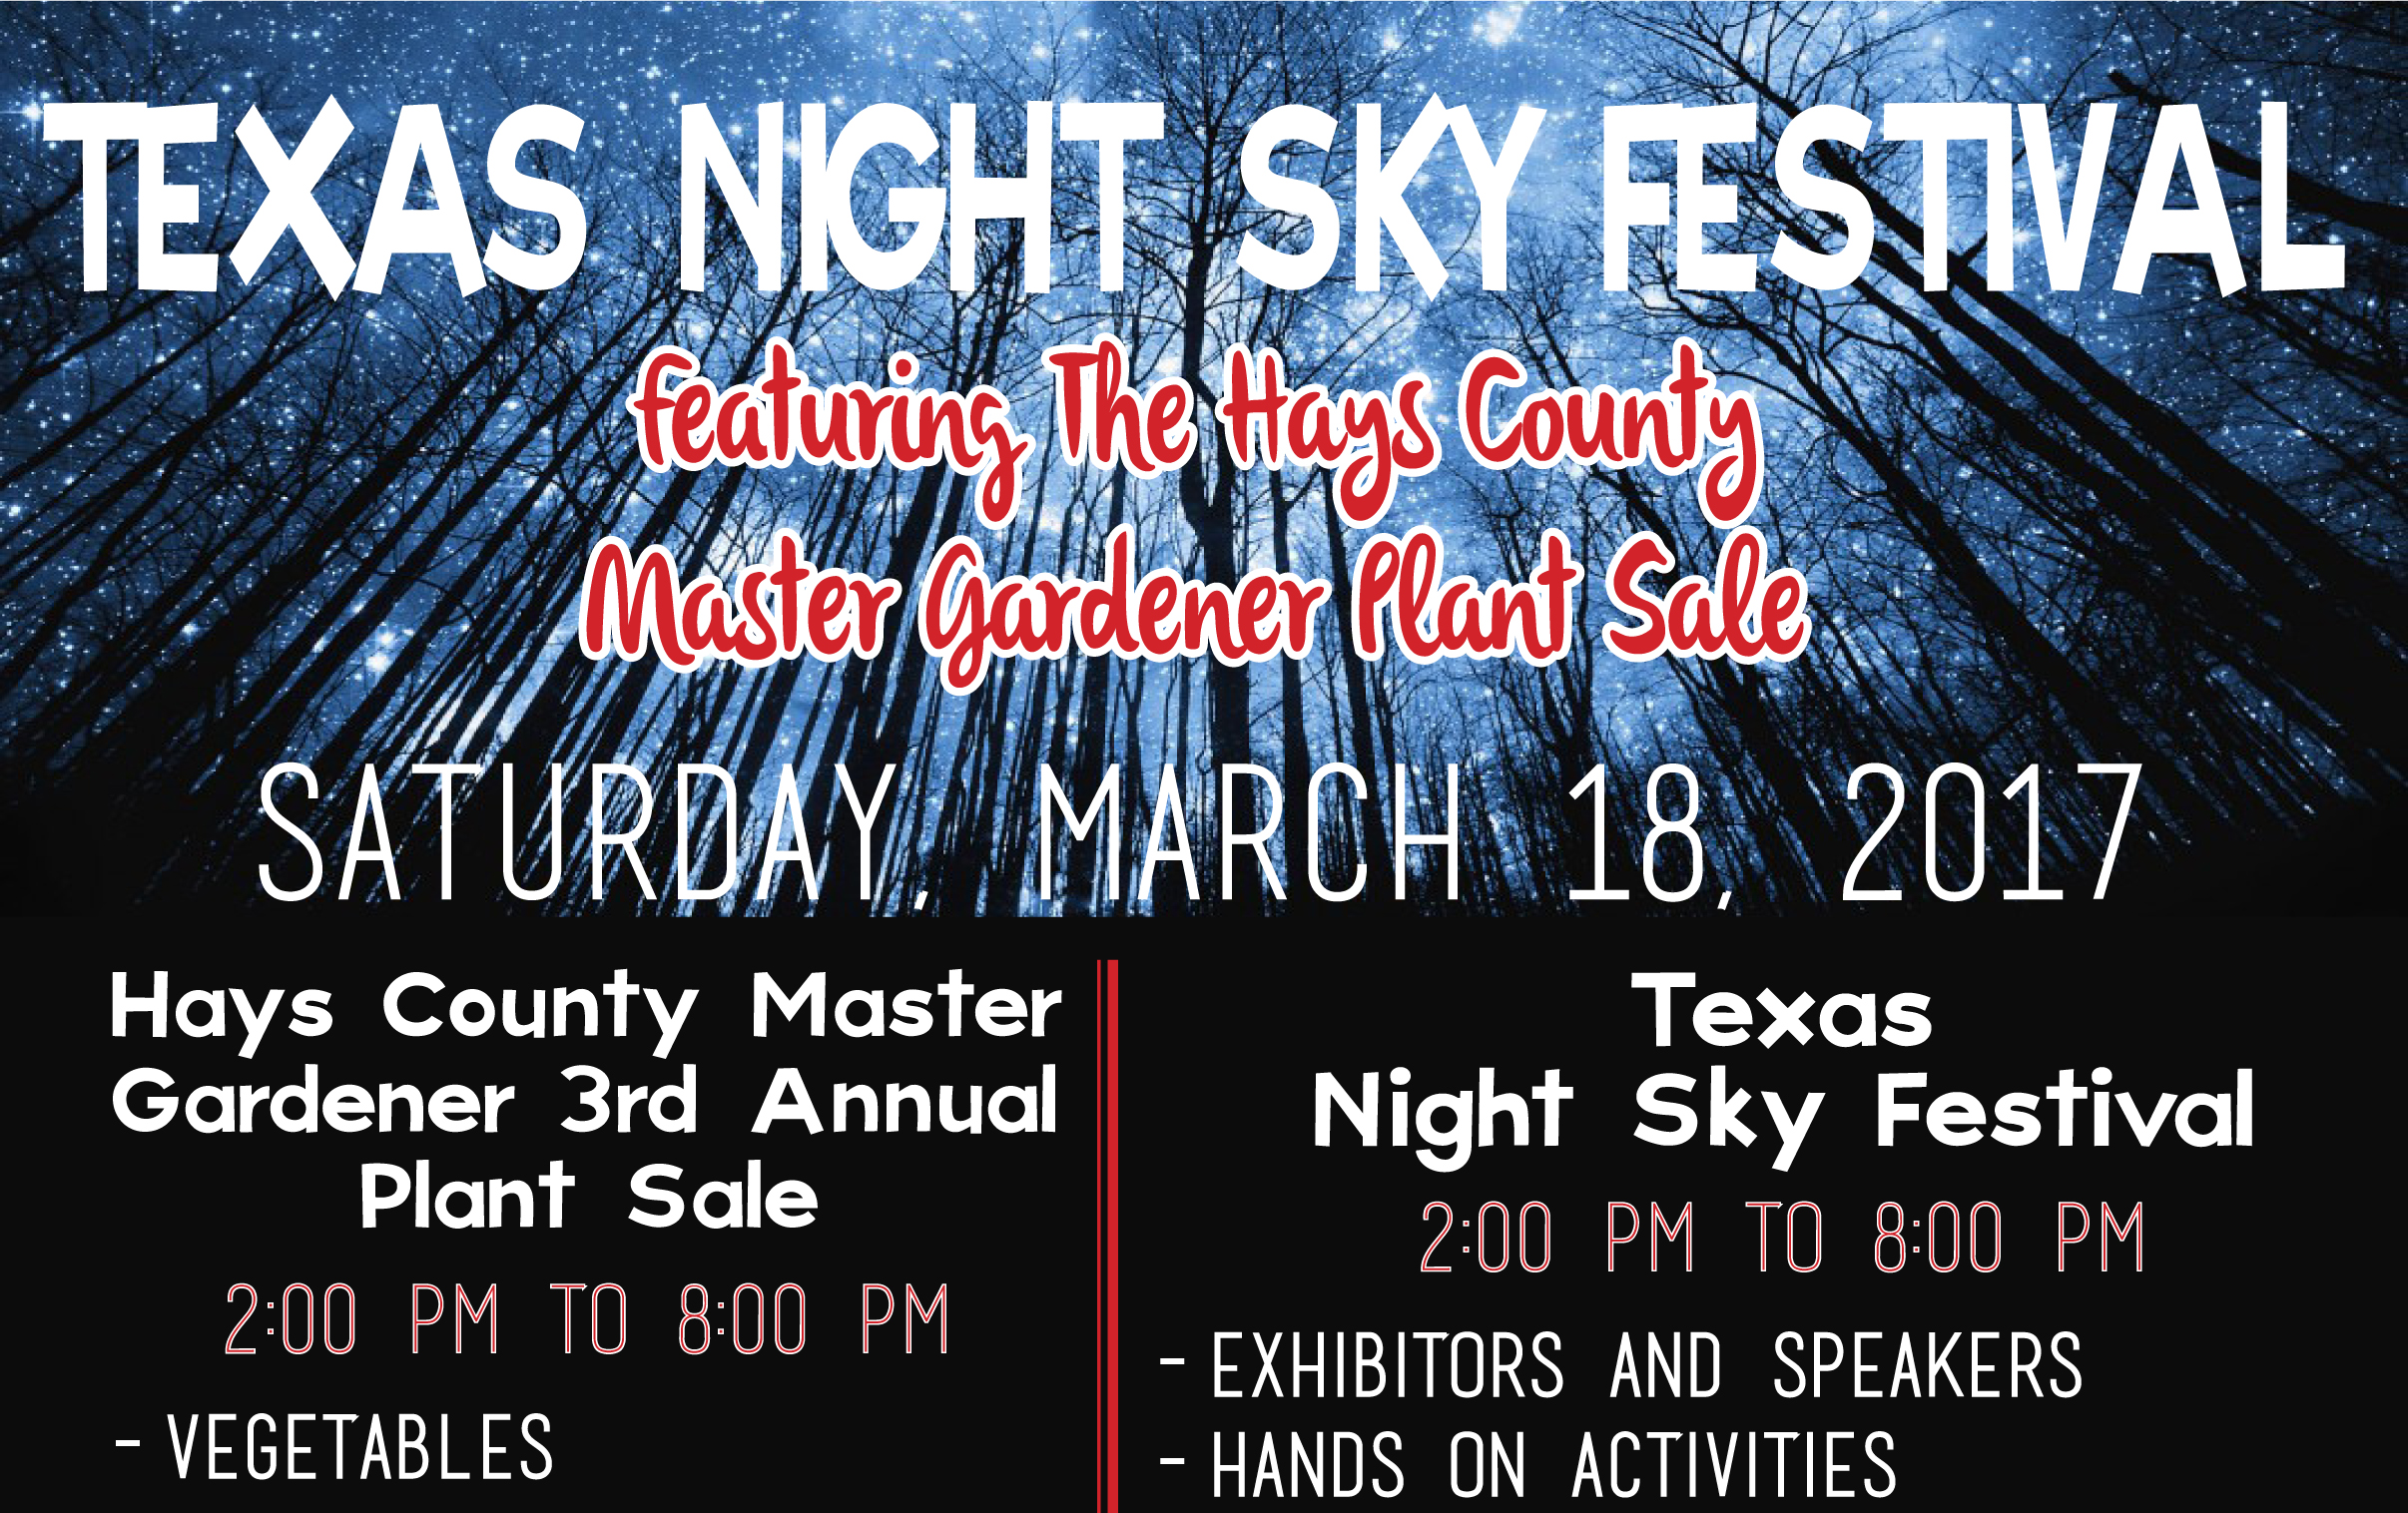 The Texas Night Sky Festival will shine brightly once again